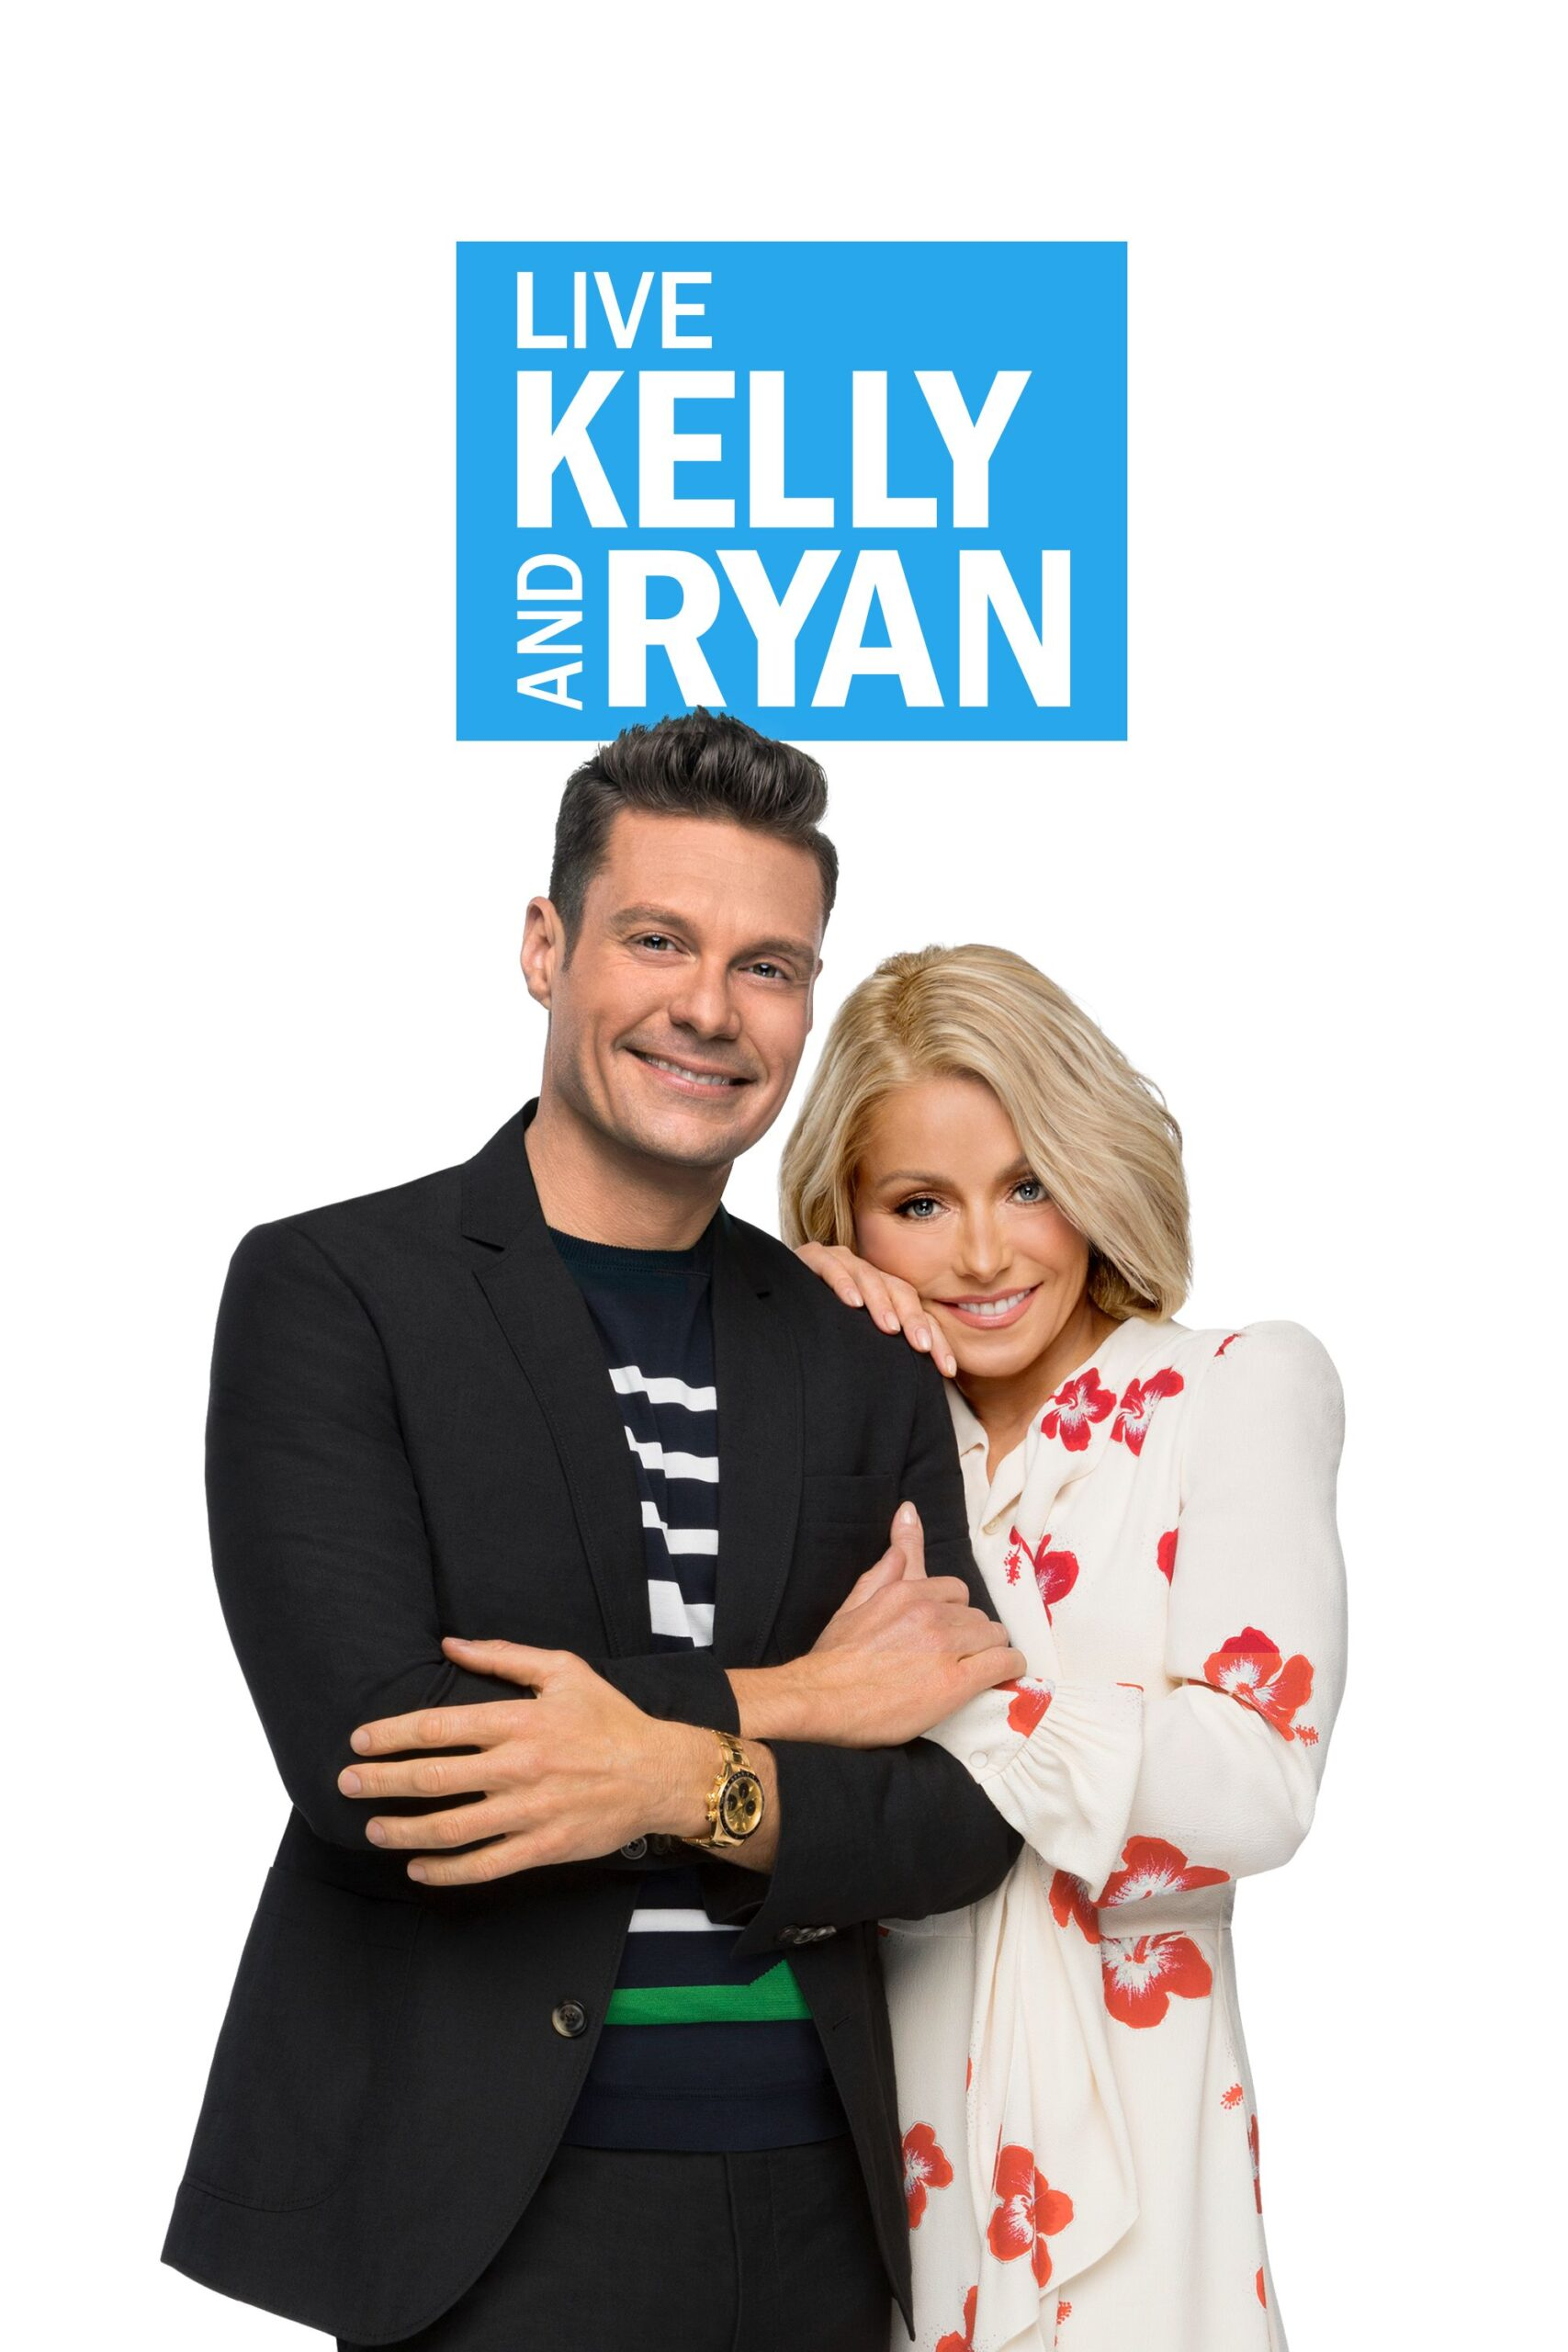 Live with Kelly and Ryan teaser image